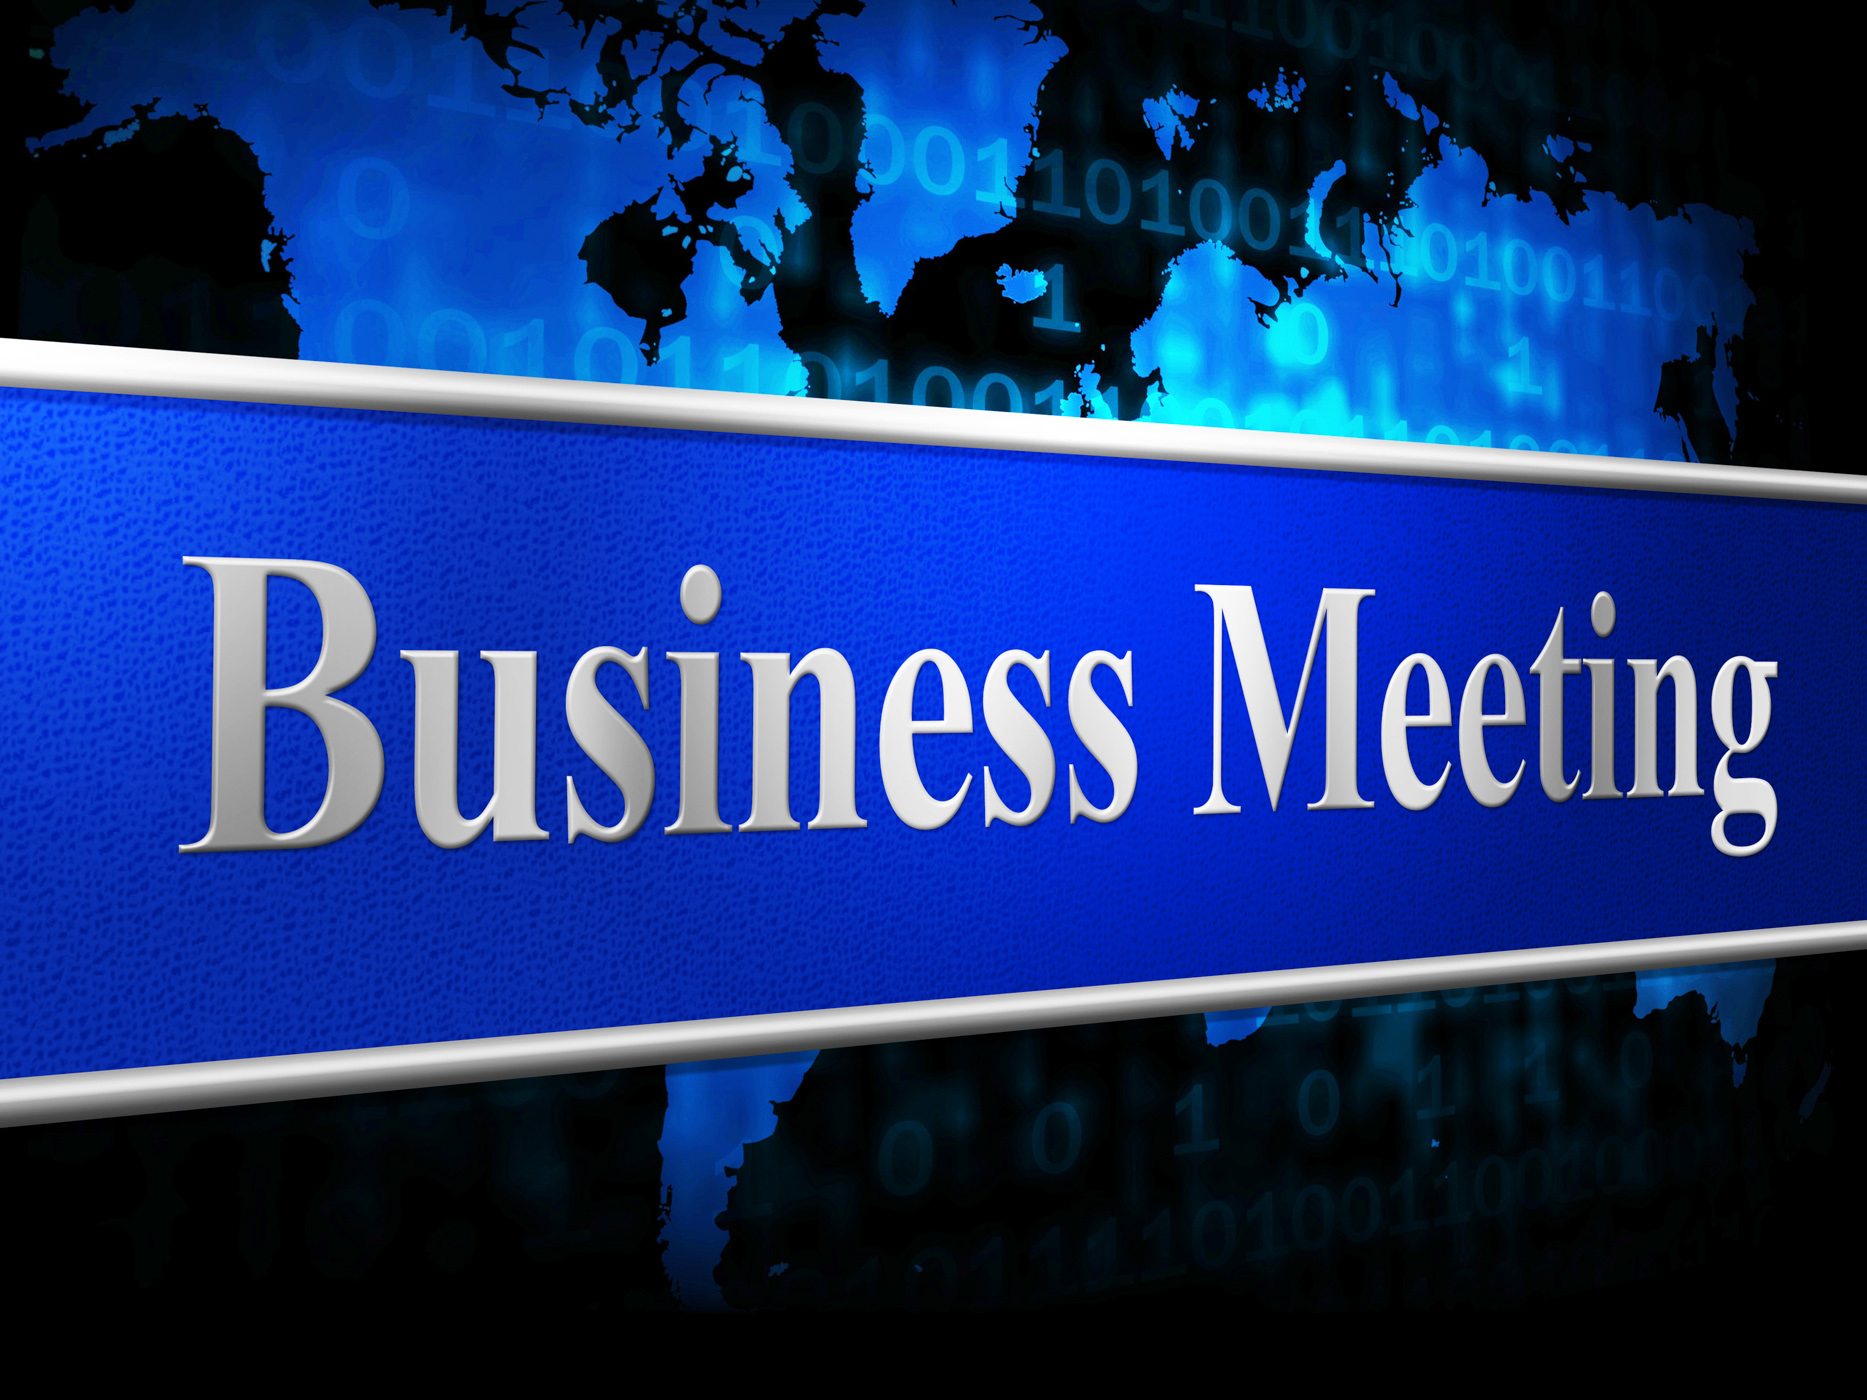 Meetings business indicates convene conference and commerce photo